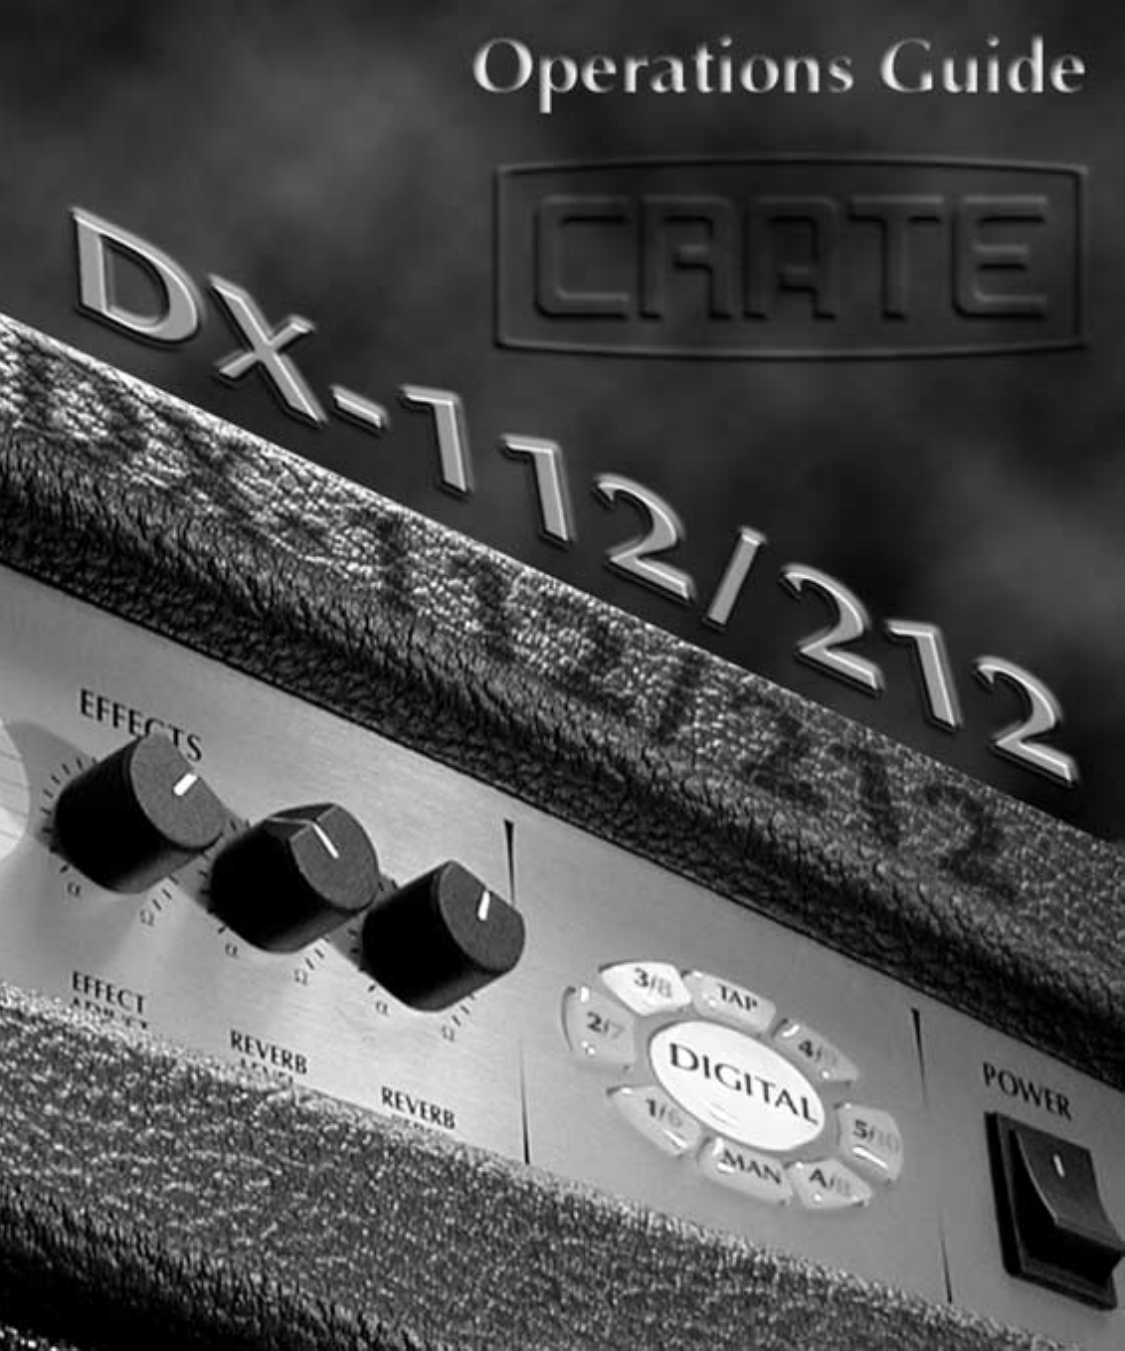 Crate Amplifiers Dx 112 Users Manual Dx112 And Dx212 Operator Fender Bassman 5f6 Tweed Guitar Effect Schematic Diagram